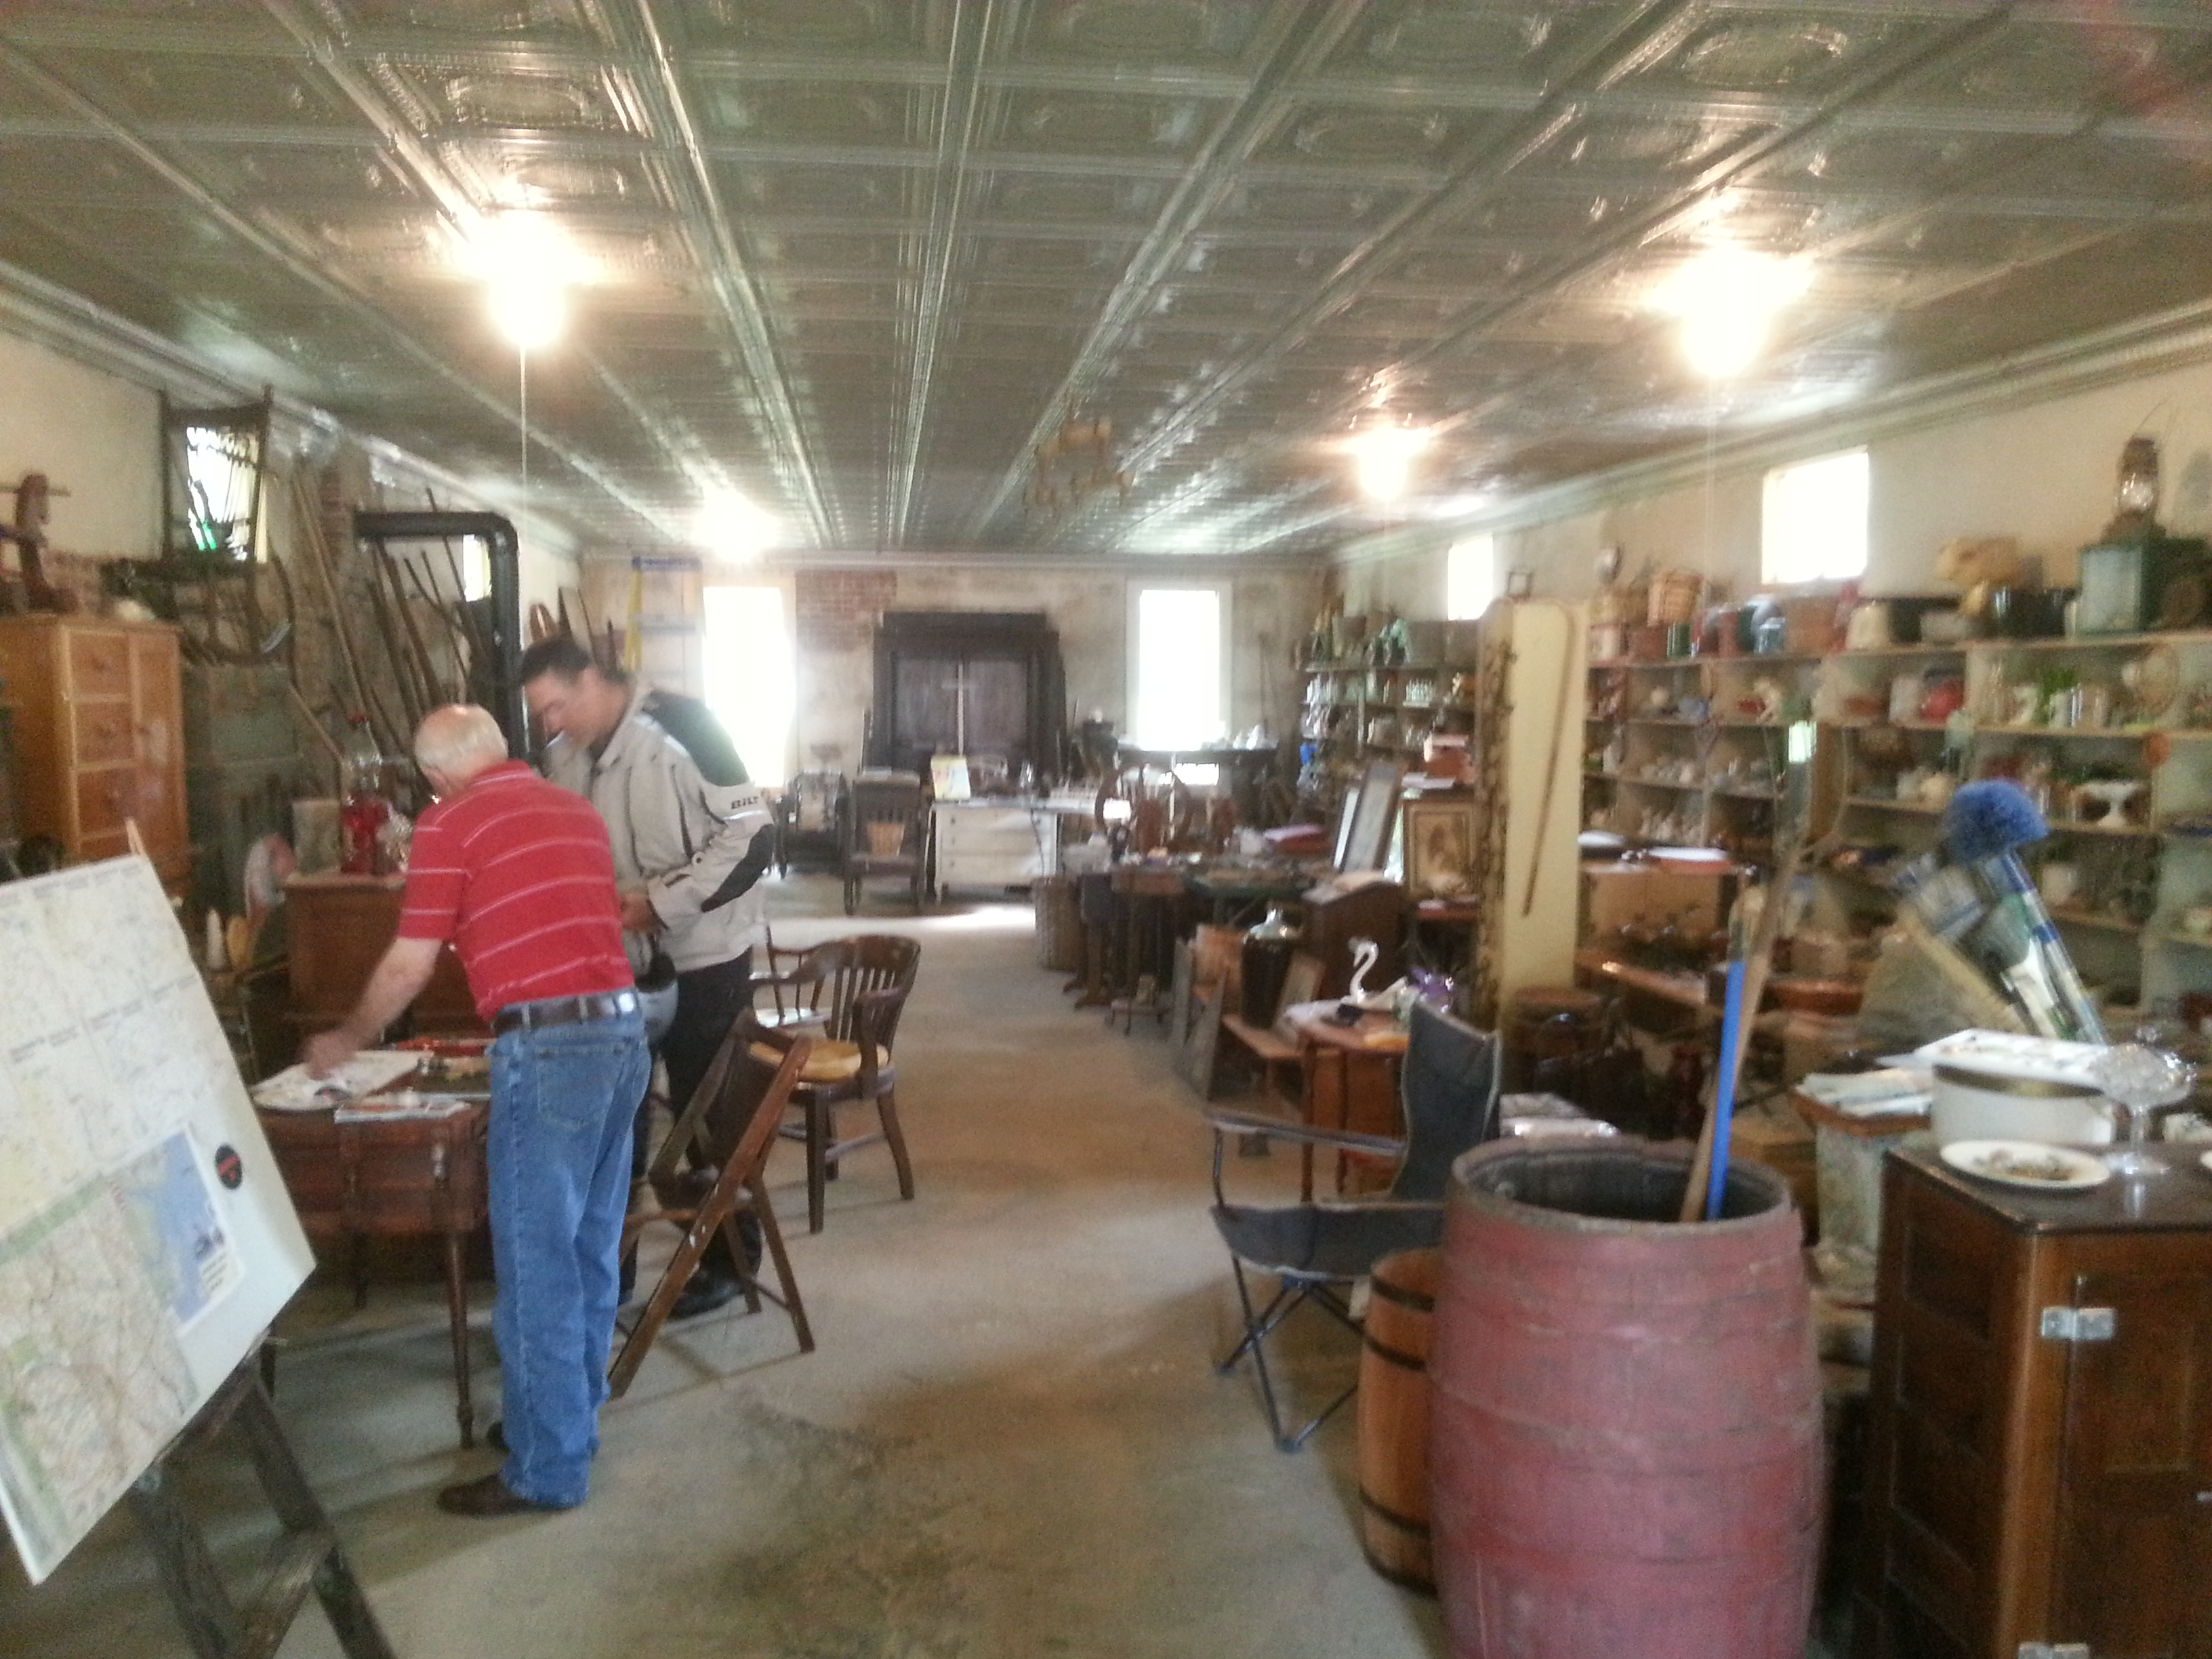 inside the TAT stop/antique store